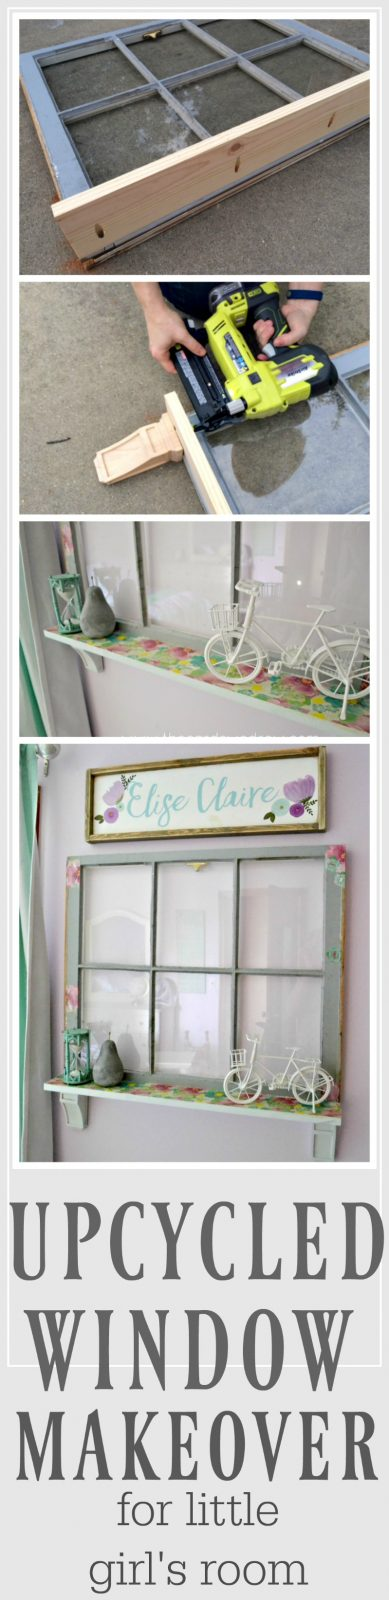 Upcycled Window Makeover for litte girl's room